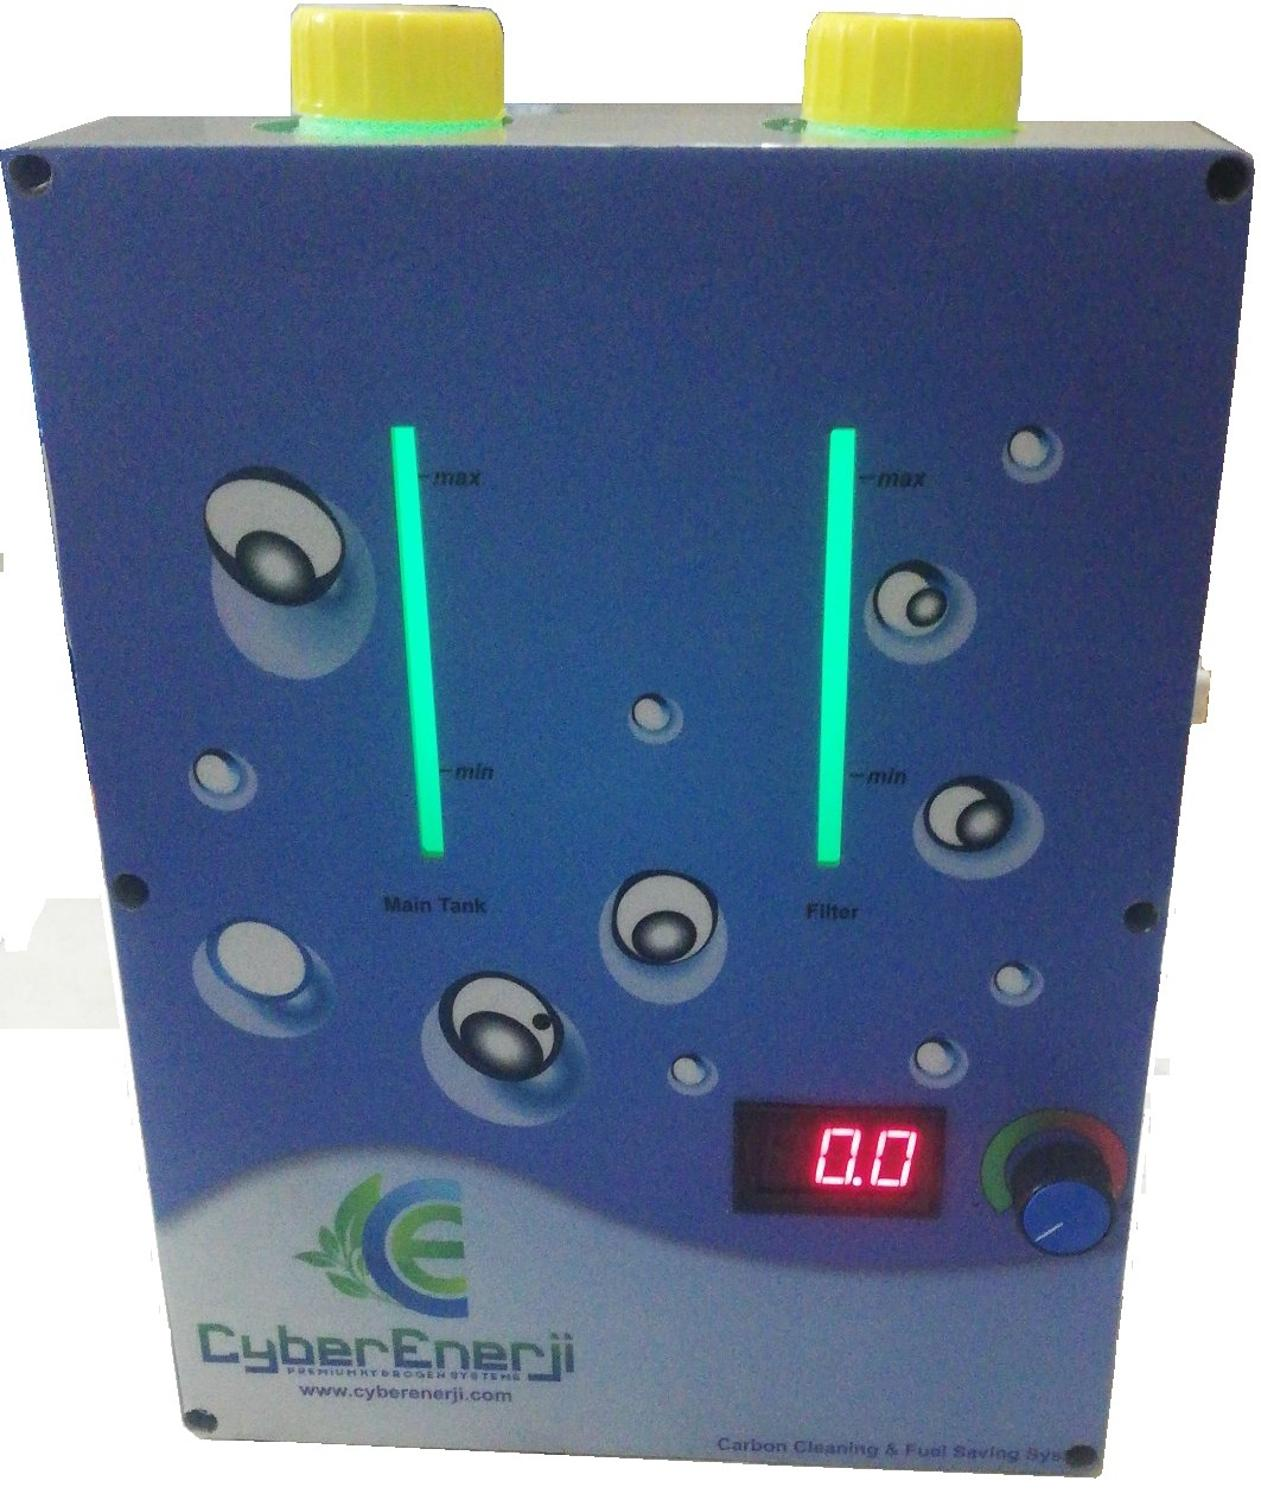 HHO DRY CELL BOX,21 PLATE DRY CELL, L3K SYSTEM, CYBER ENERGY  HYDROGEN GENERATOR, FUEL SAVE, zero emission, HHO for health